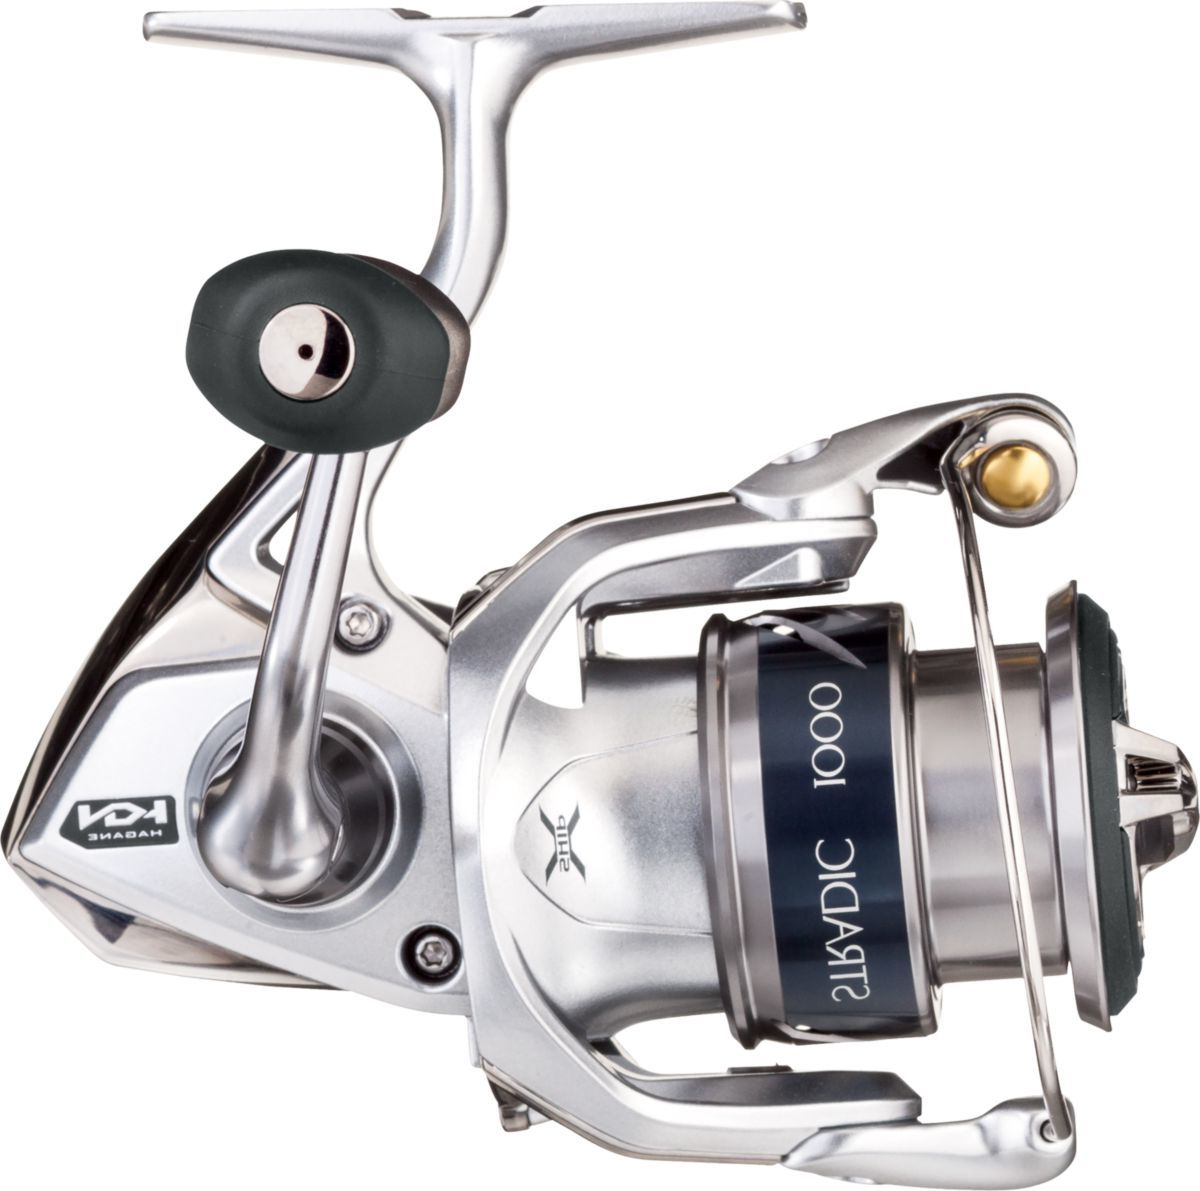 Shimano® Stradic® FK/Offshore Angler™ Inshore Extreme® Rod and Reel Spinning Combo